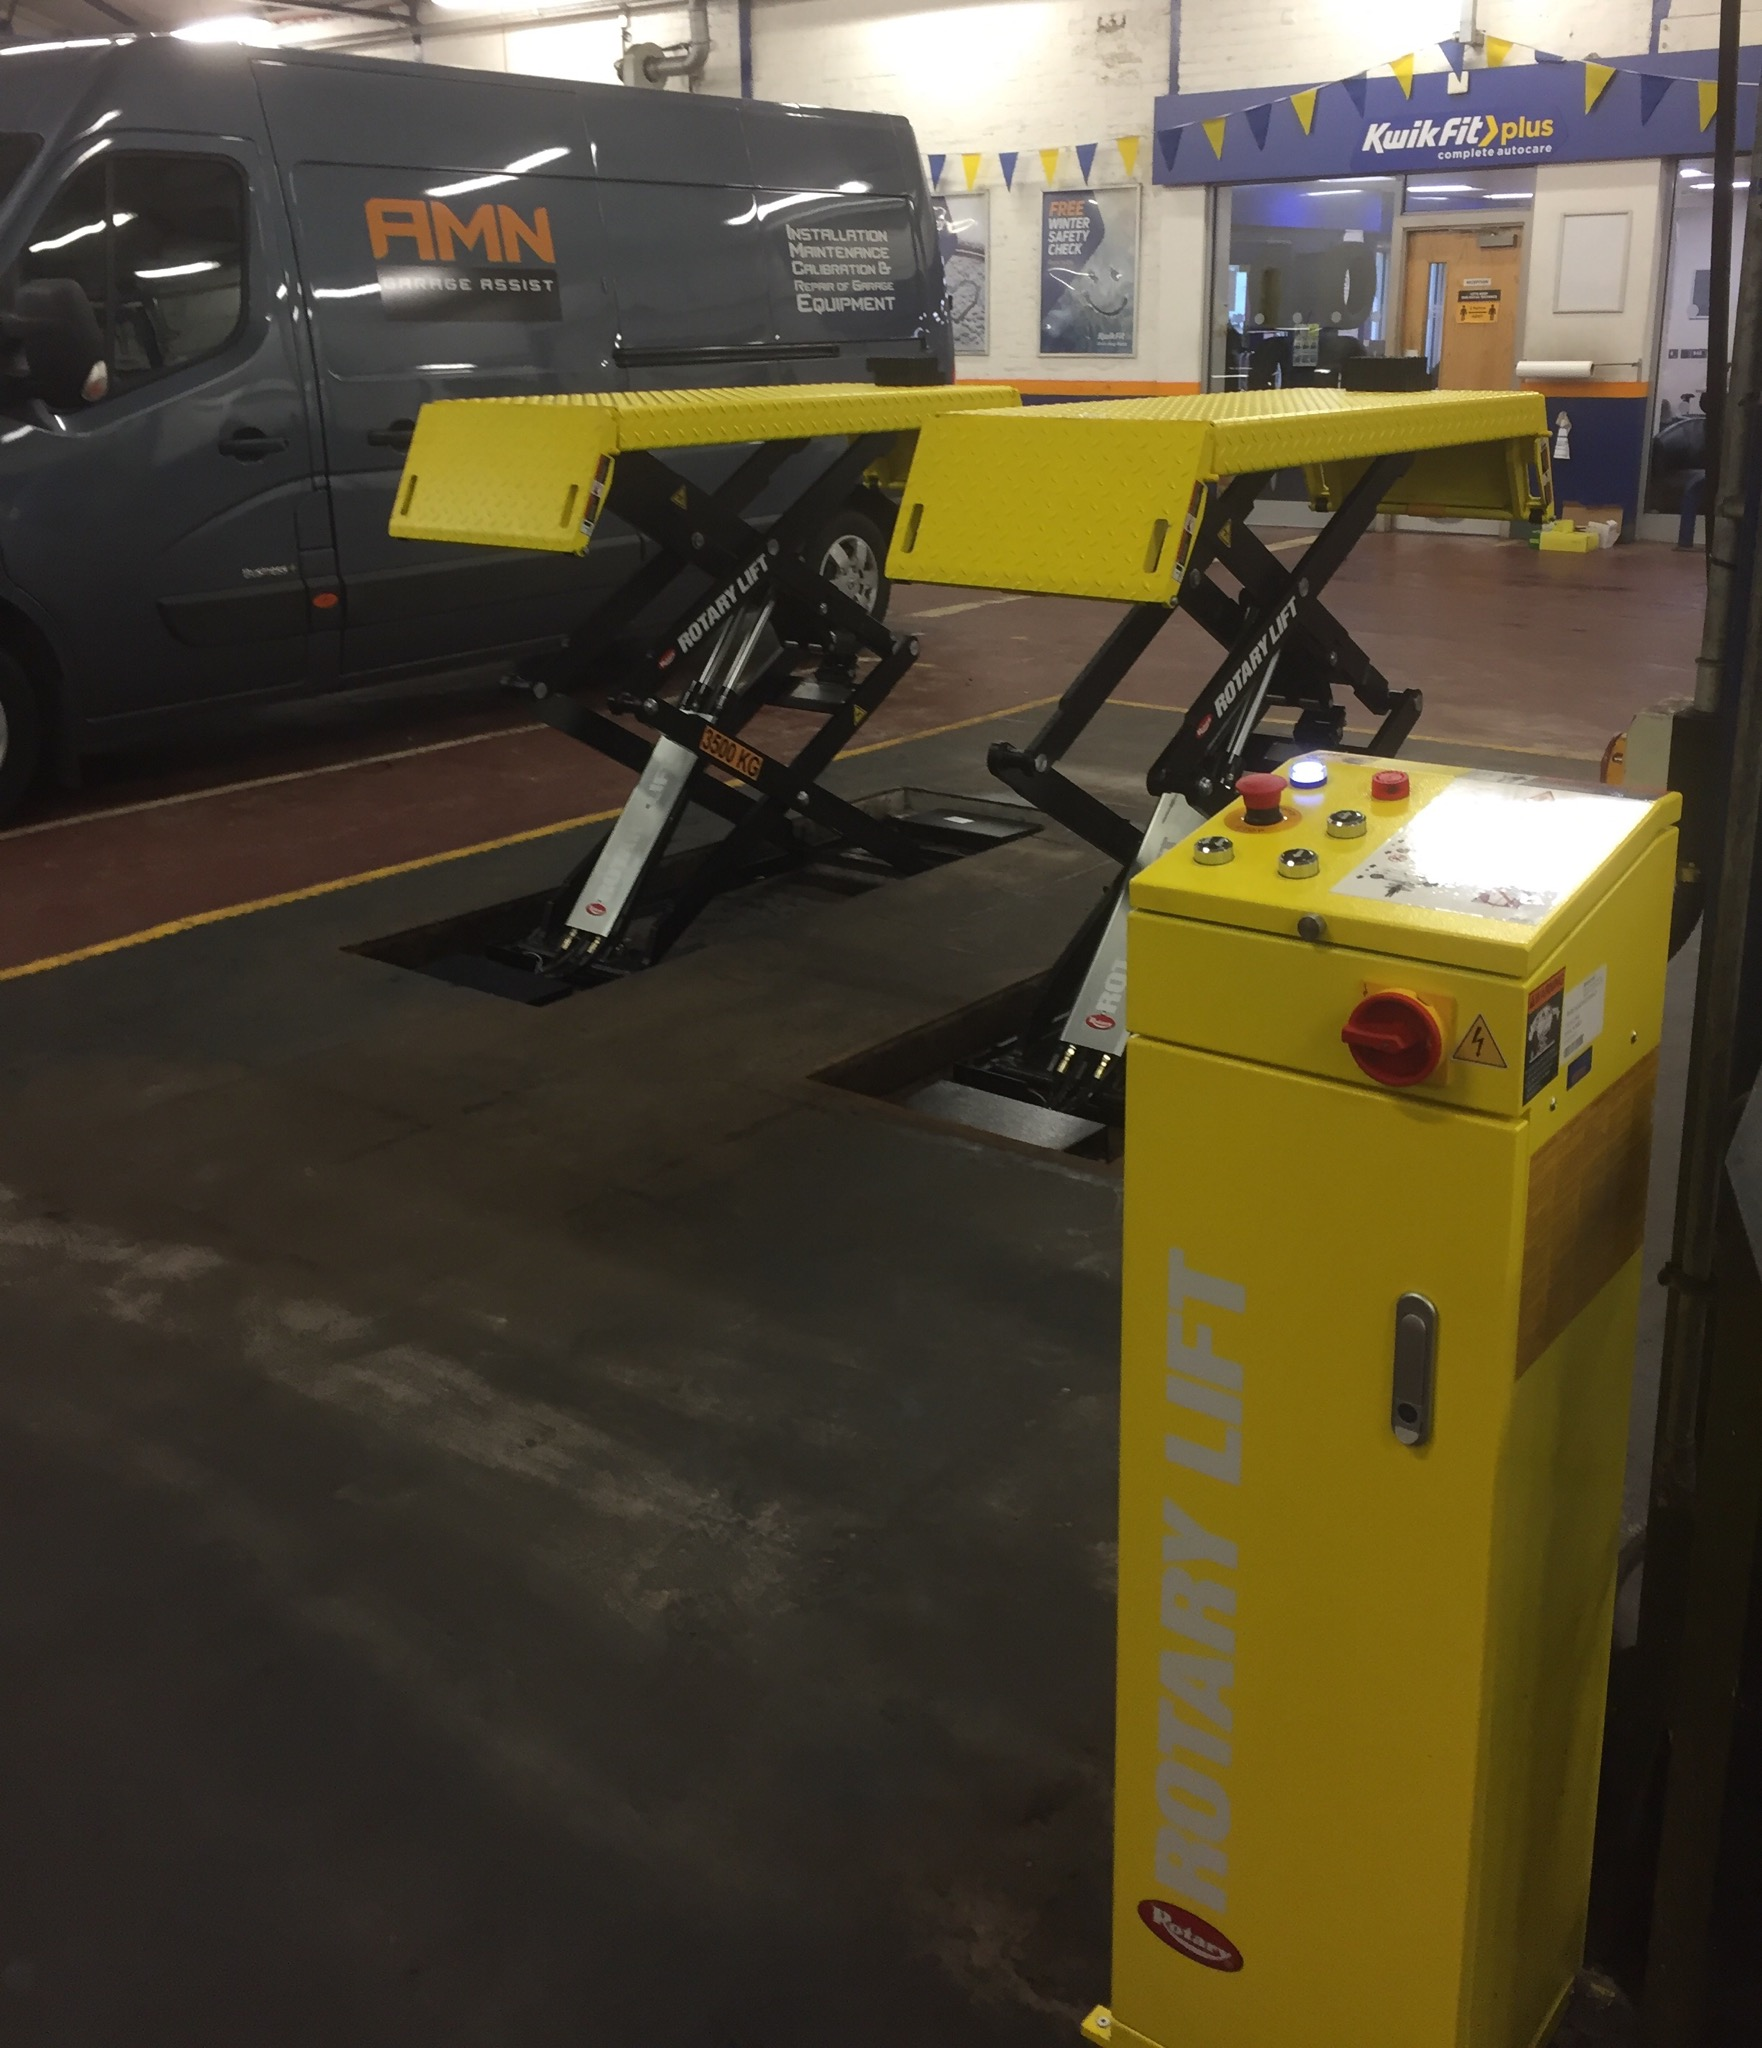 The newly installed and slick looking DS35 Scissor Lift - now presented at Kwik Fit Perth Road in Dundee.